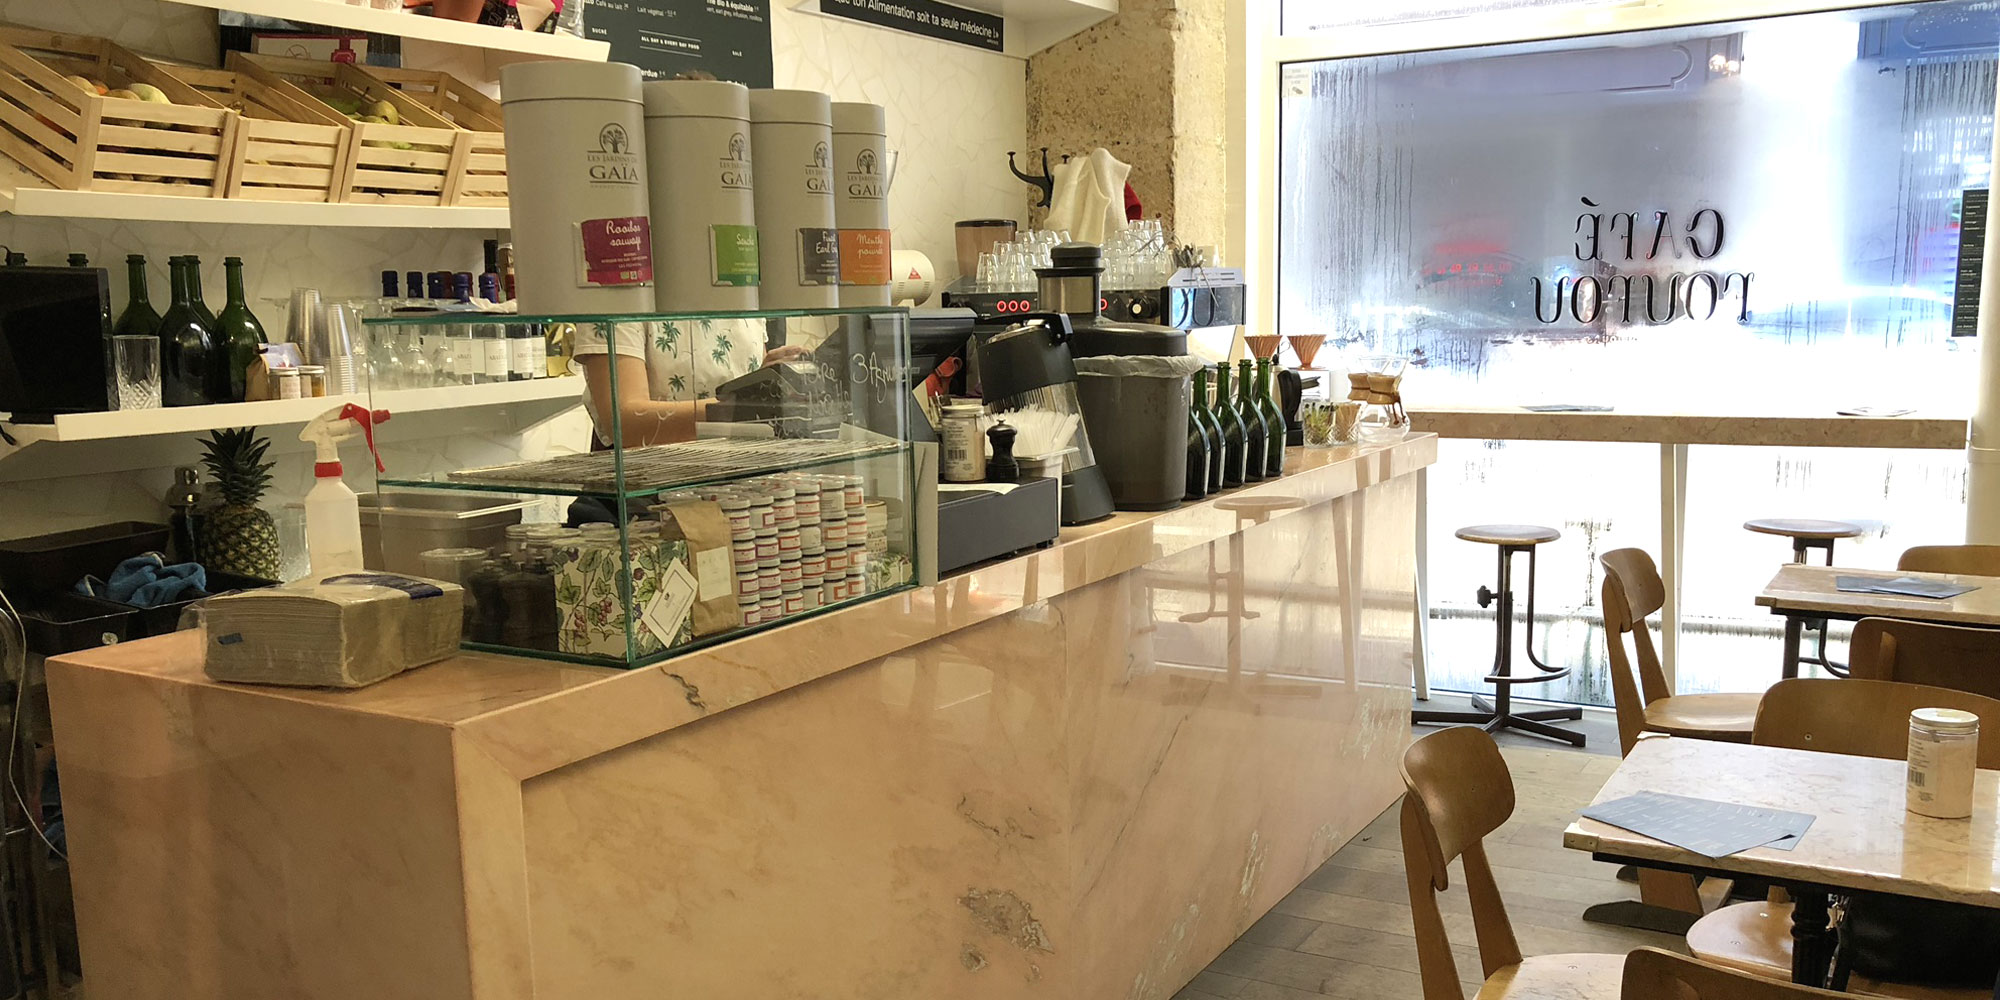 Brunch Café Foufou (75011 Paris)